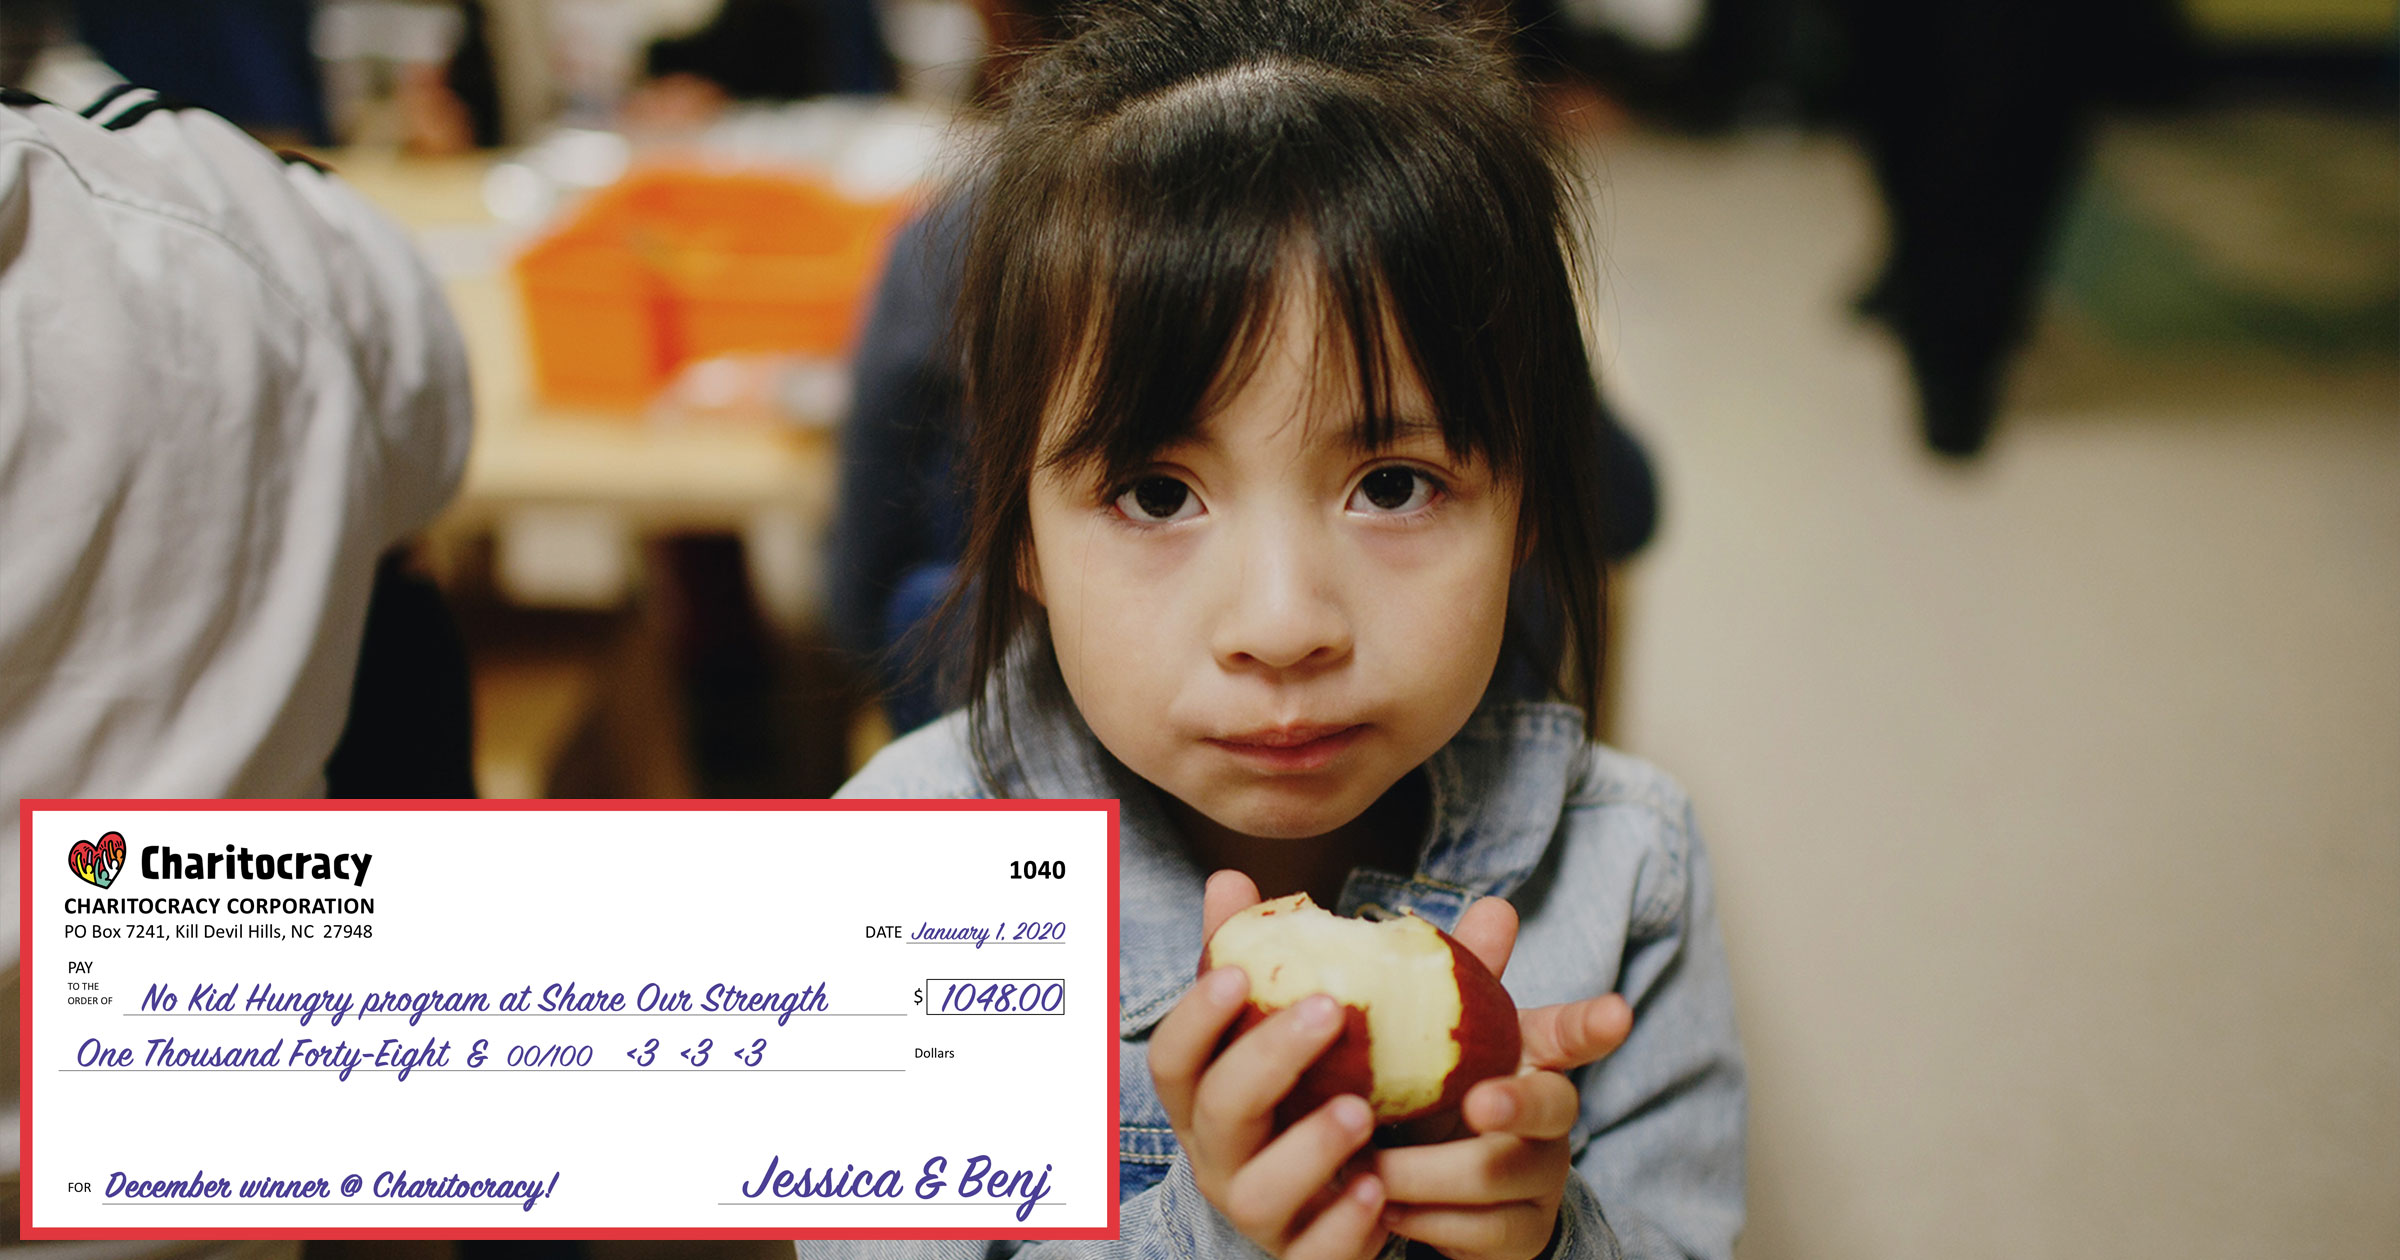 Charitocracy's 40th check to December winner No Kid Hungry for $1048